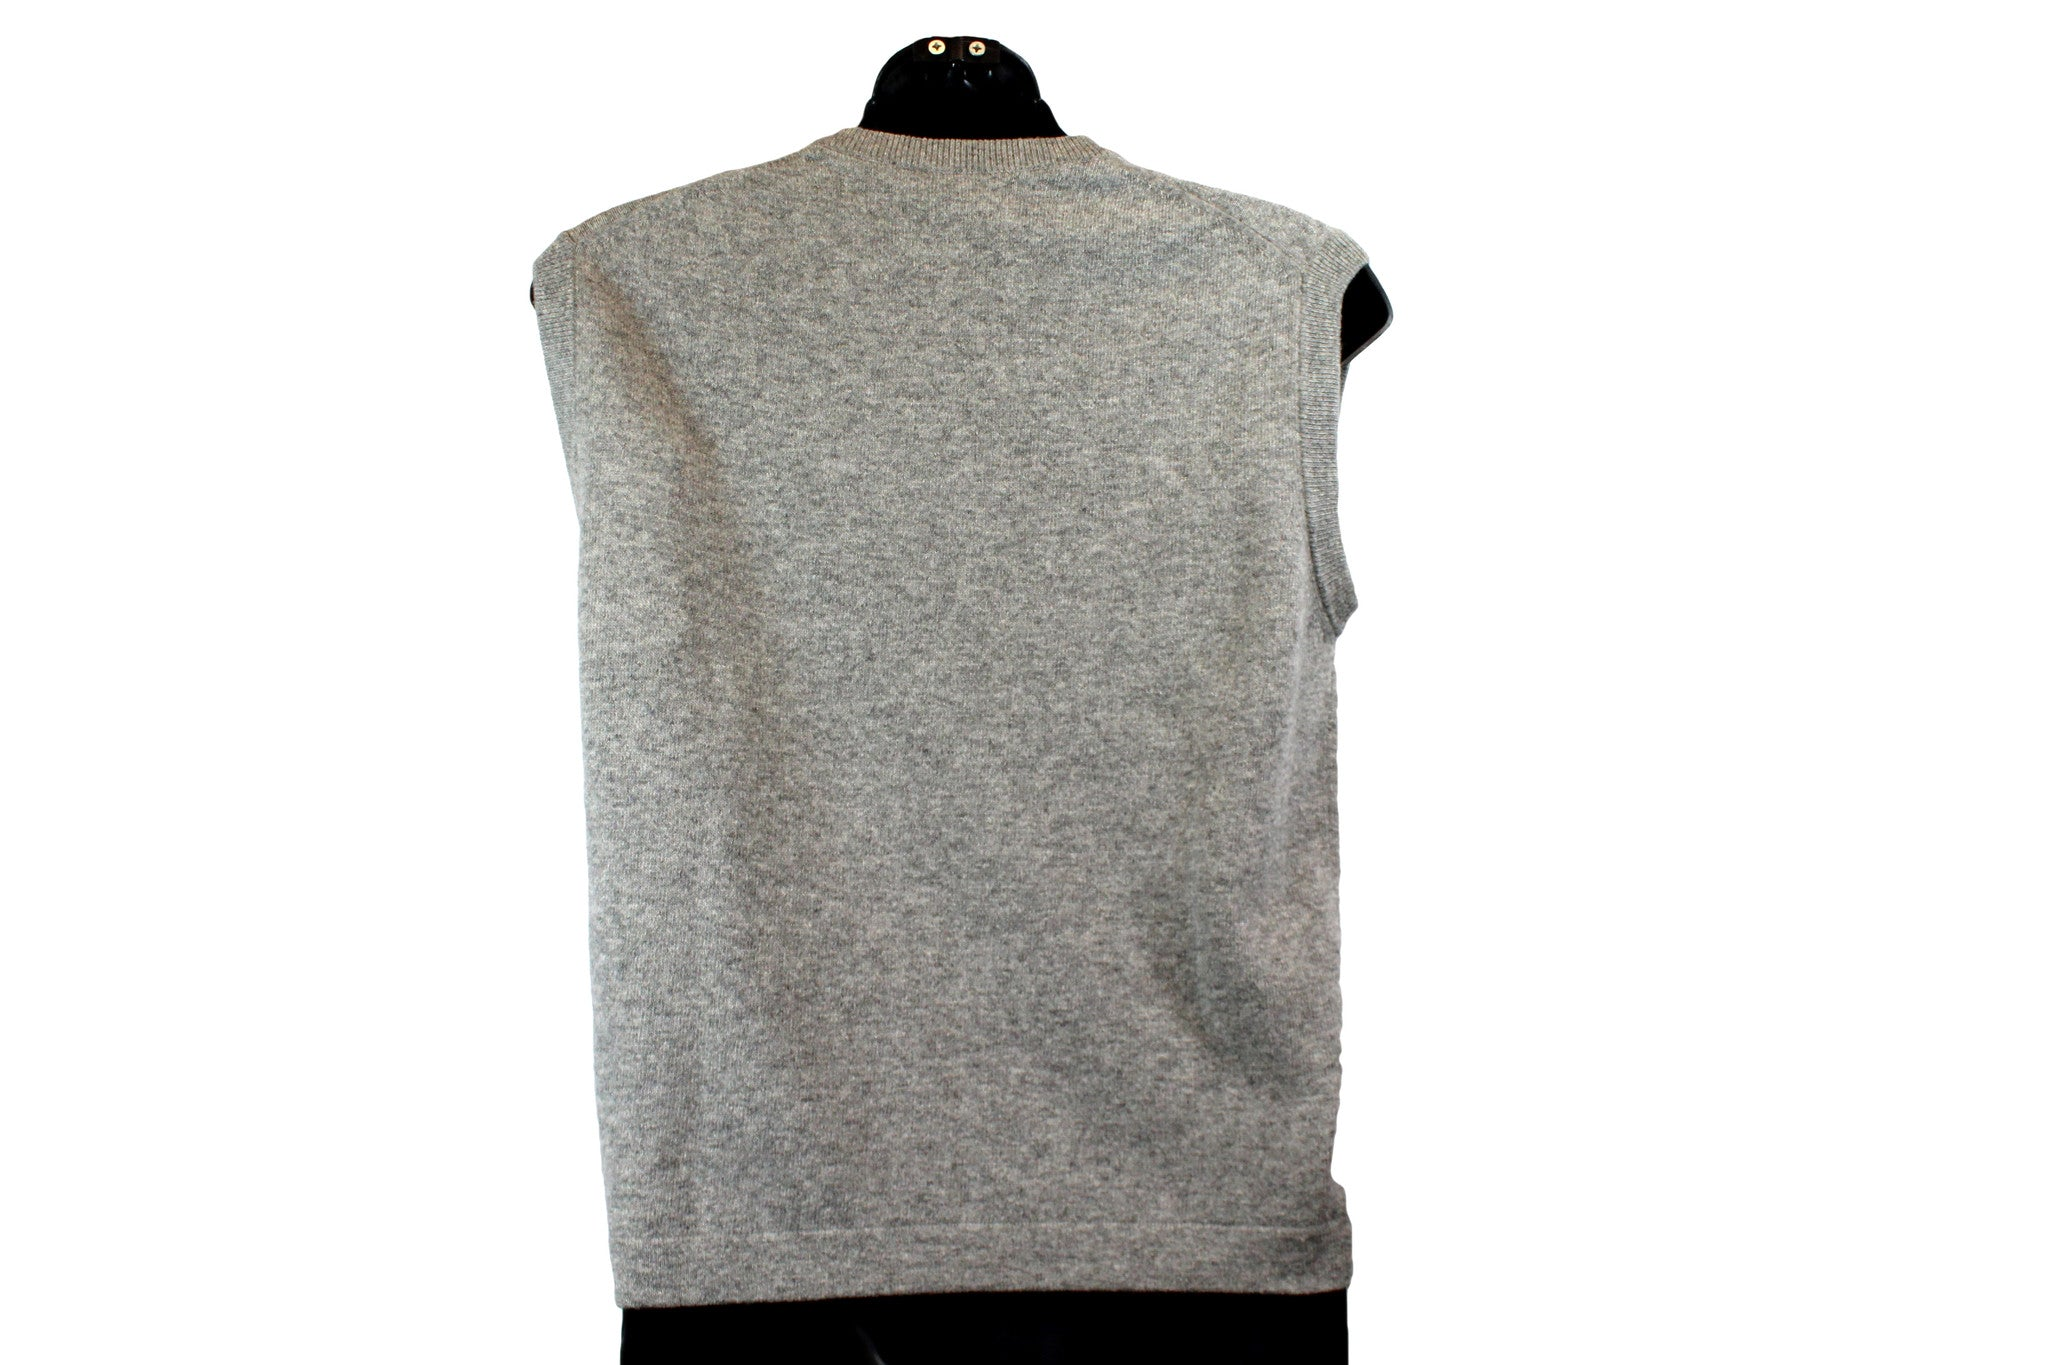 Hermes Grey Cashmere  Sleeveless Crewneck Sweater (Size L) - Encore Consignment - 4